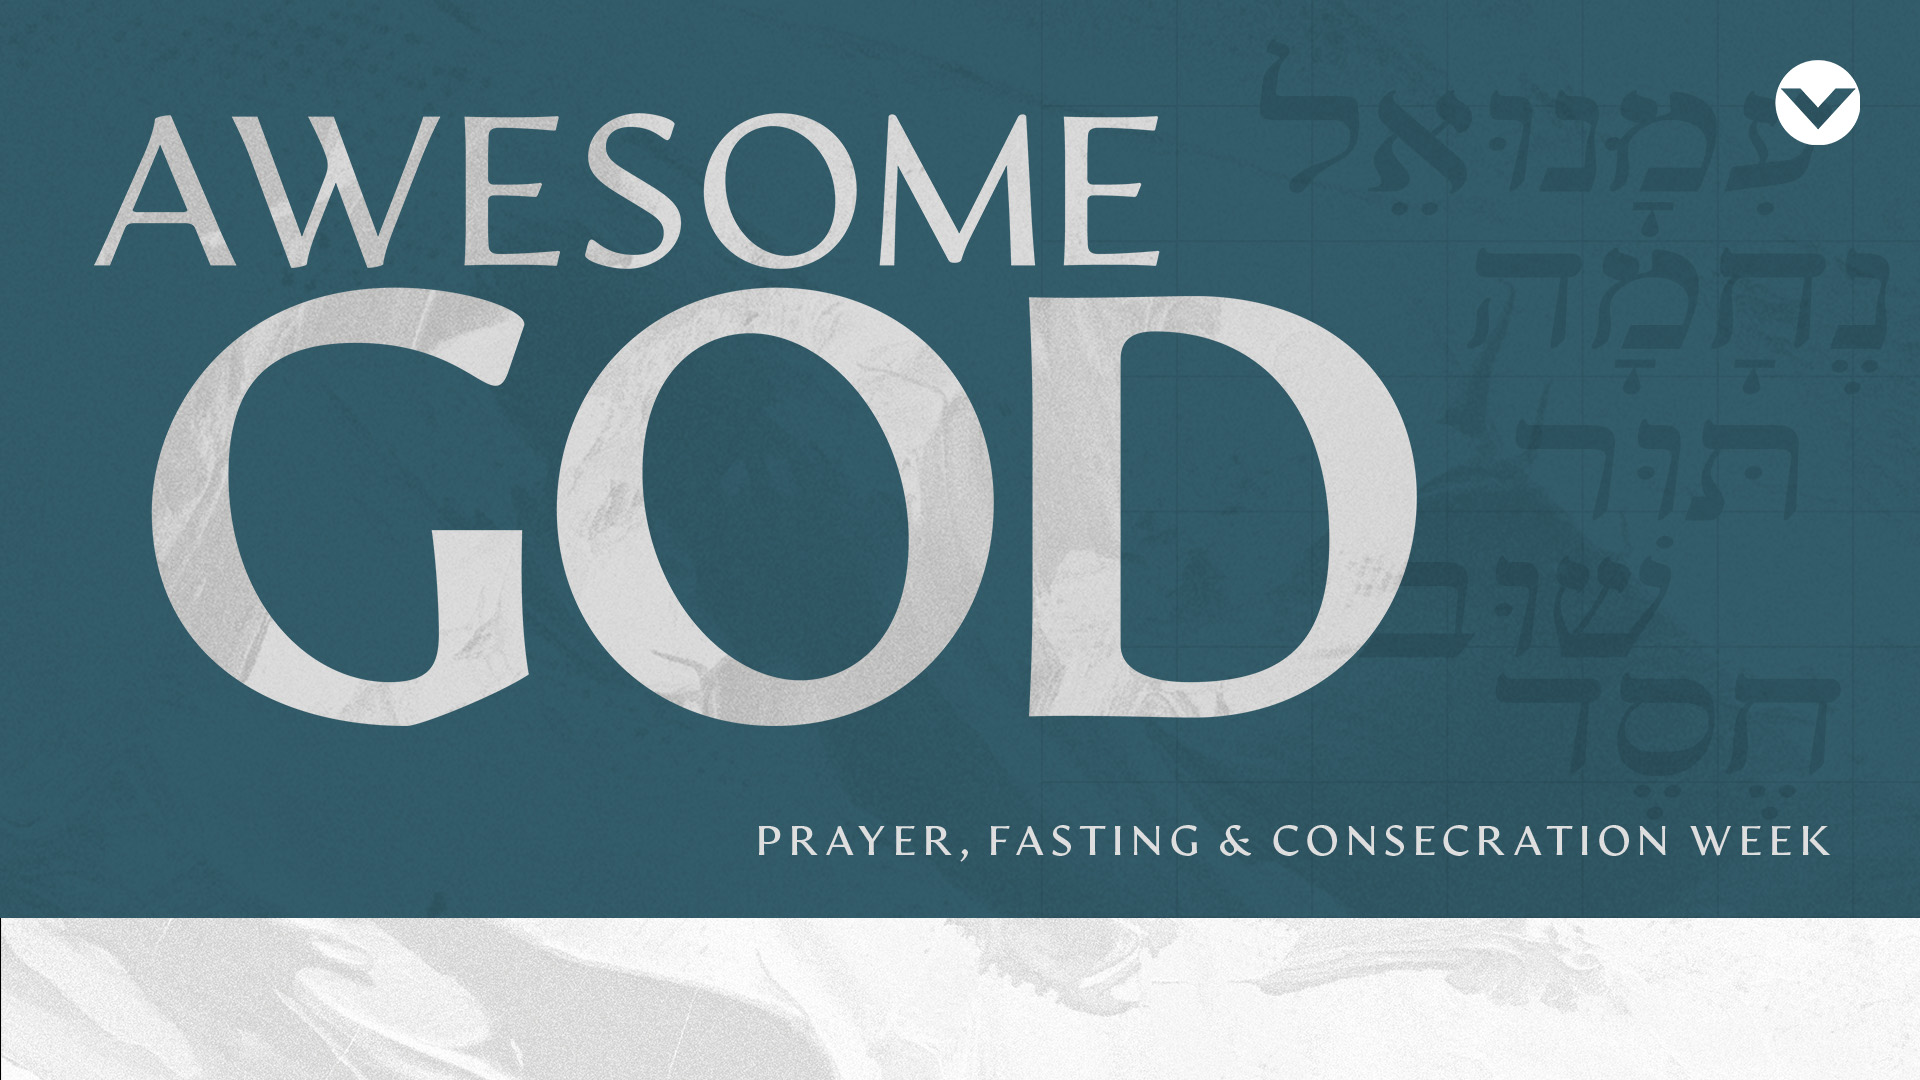 awesome-god-midyear-prayer-and-fasting